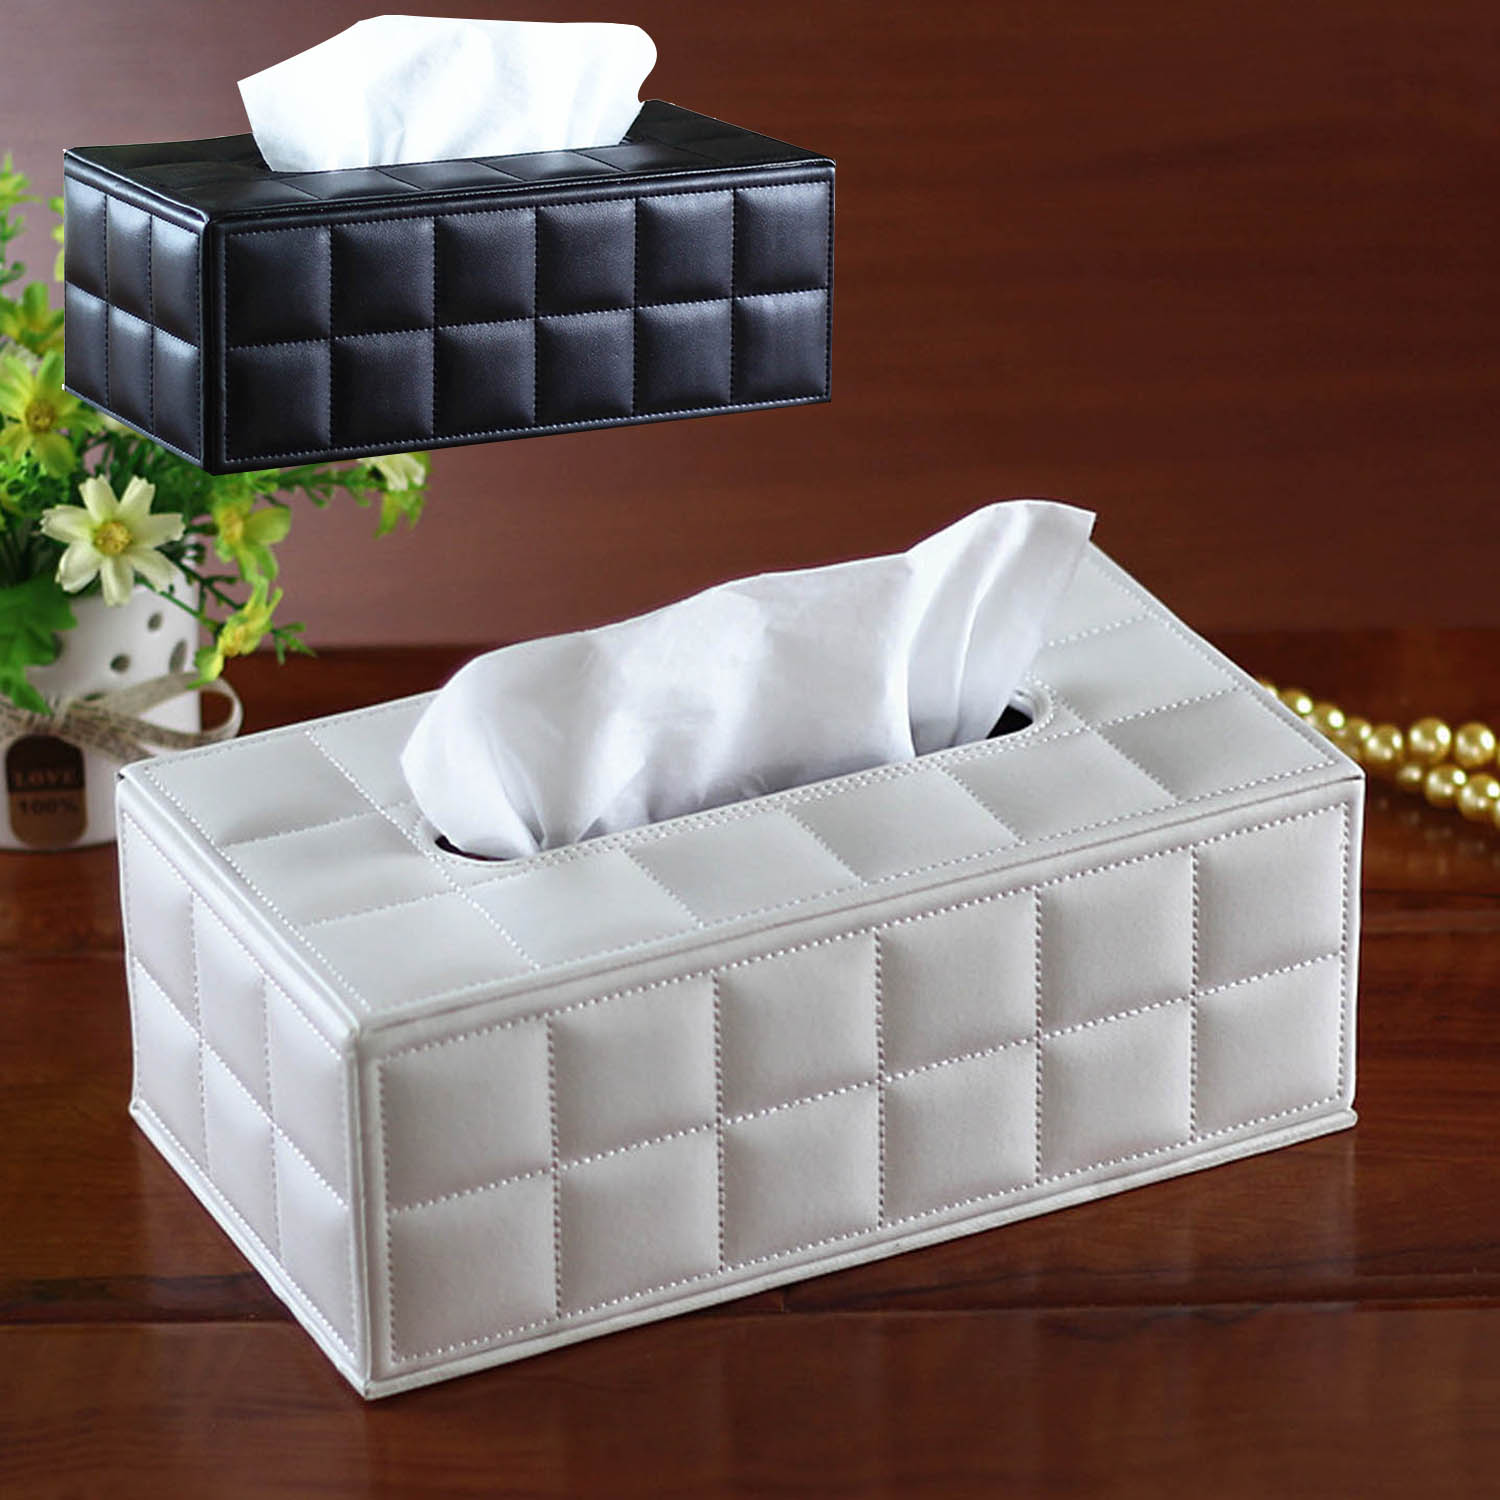 Behokic Facial Tissue Box Cover PU Leather Hotel Car Rectangle Container Towel Napkin Tissue Case Holder